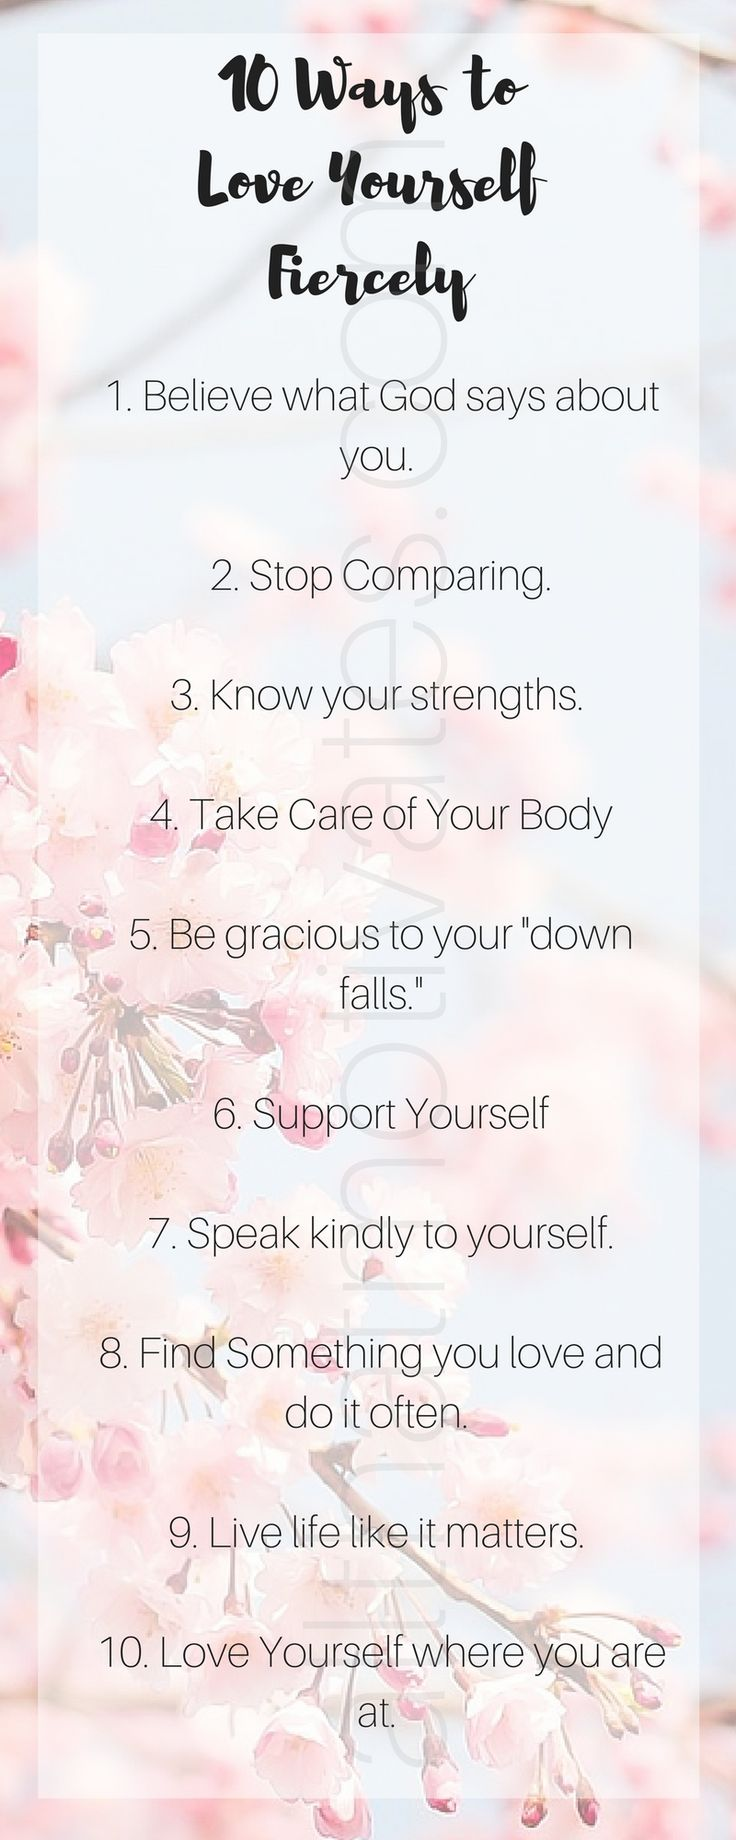 10 Ways to Love Yourself Fiercely #allthatmotivates http://wp.me/p4MPm4-zQ